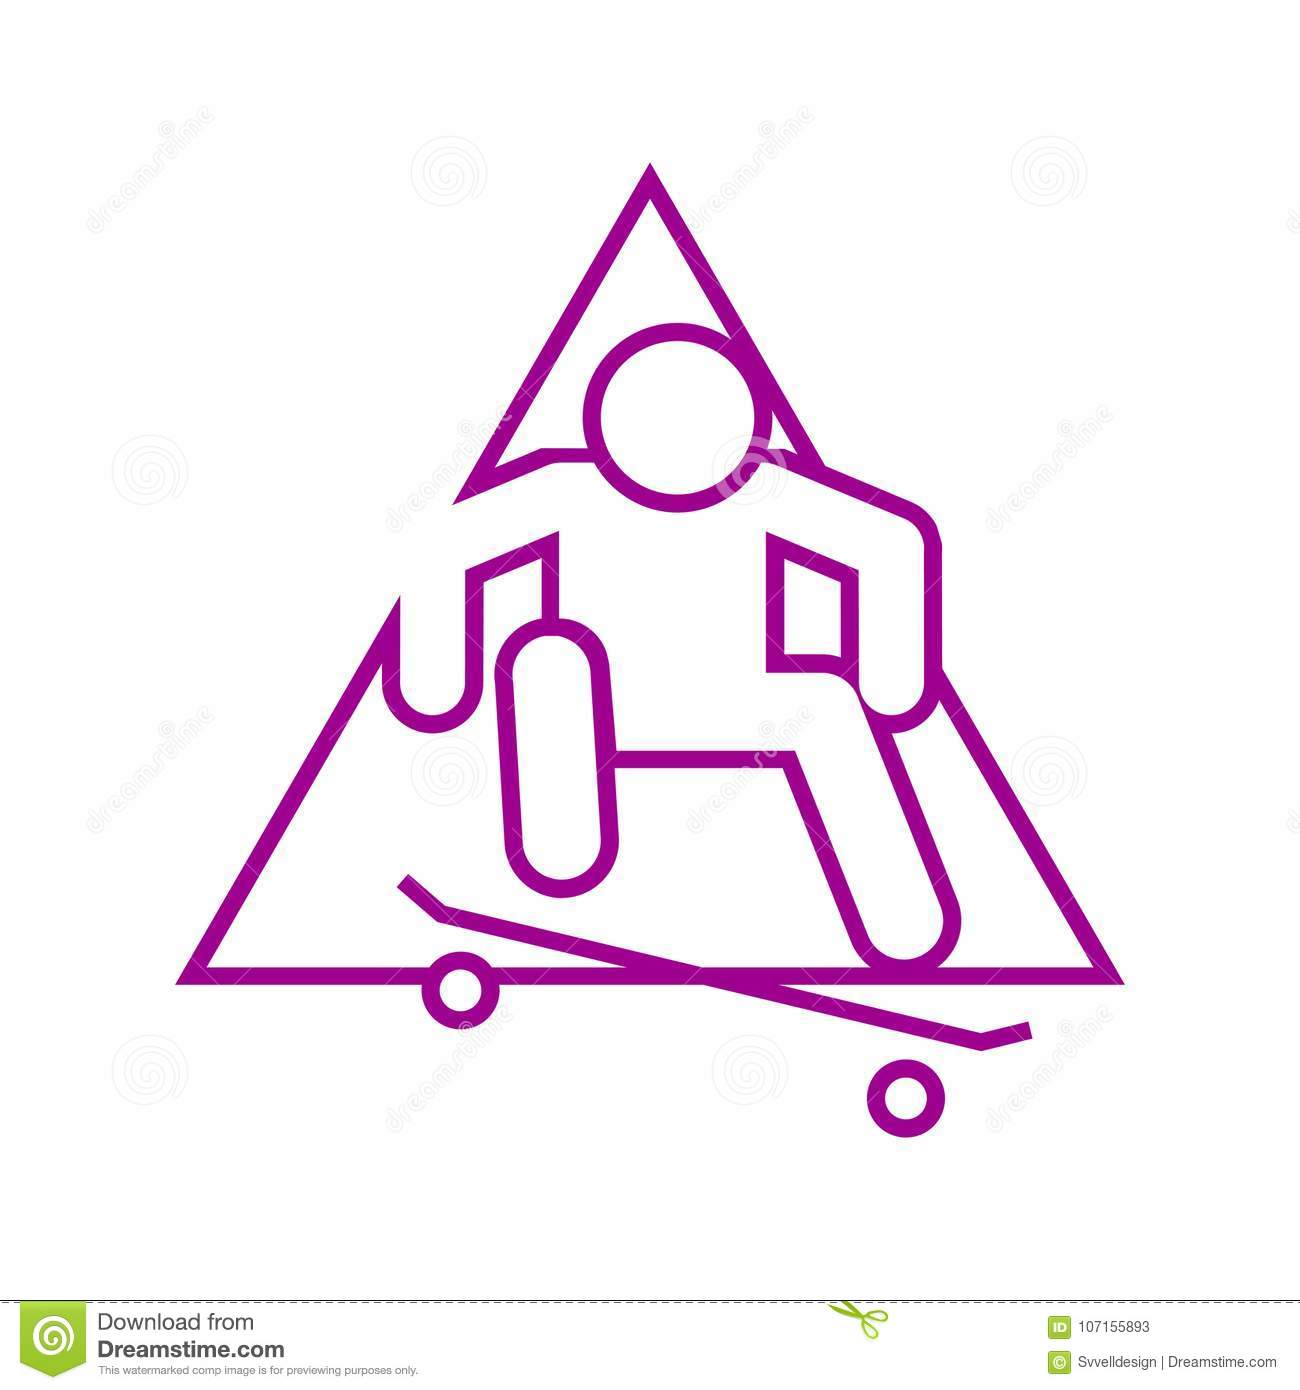 Triangle Shape Skateboard Ollie Sport Outline Figure Symbol Vector